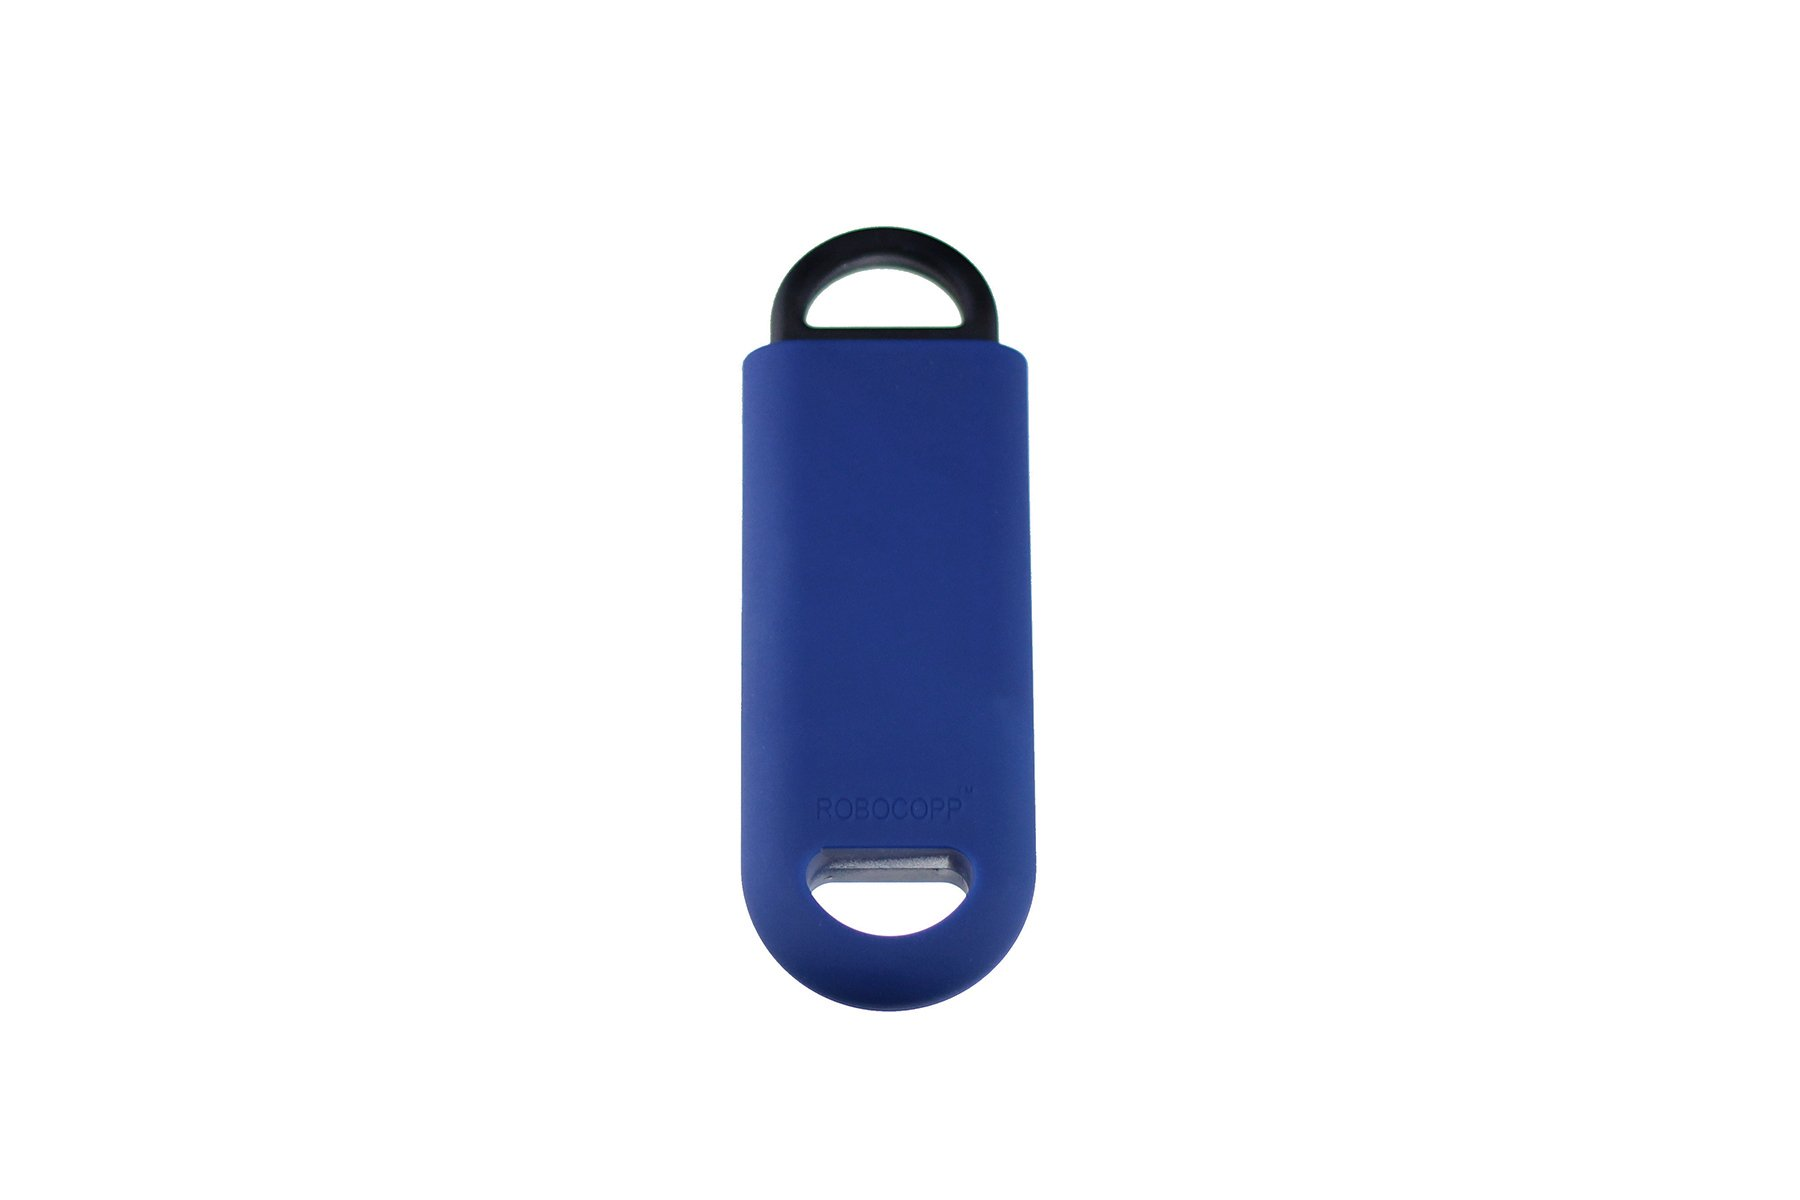 B A S U eAlarm+ with Tripwire Hook, Emergency Personal Alarm, Battery Included, Carabiner Included, Navy Blue by B A S U (Image #5)